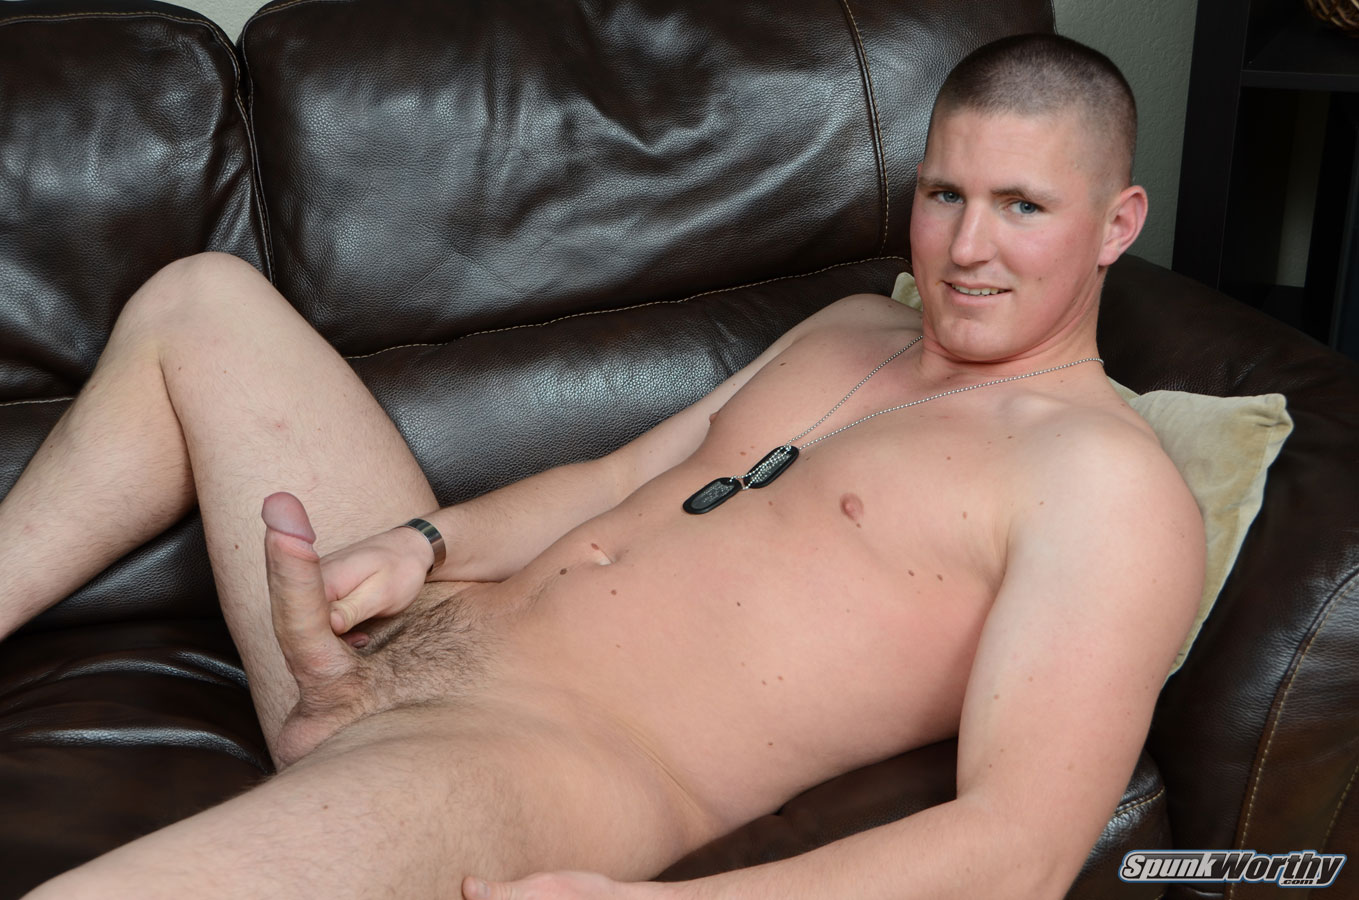 SpunkWorthy-Eli-Straight-Marine-With-Big-Uncut-Cock-Masturbating-Jerking-Off-16 Real Straight Marine With Huge Uncut Cock Shoots His Cum Load